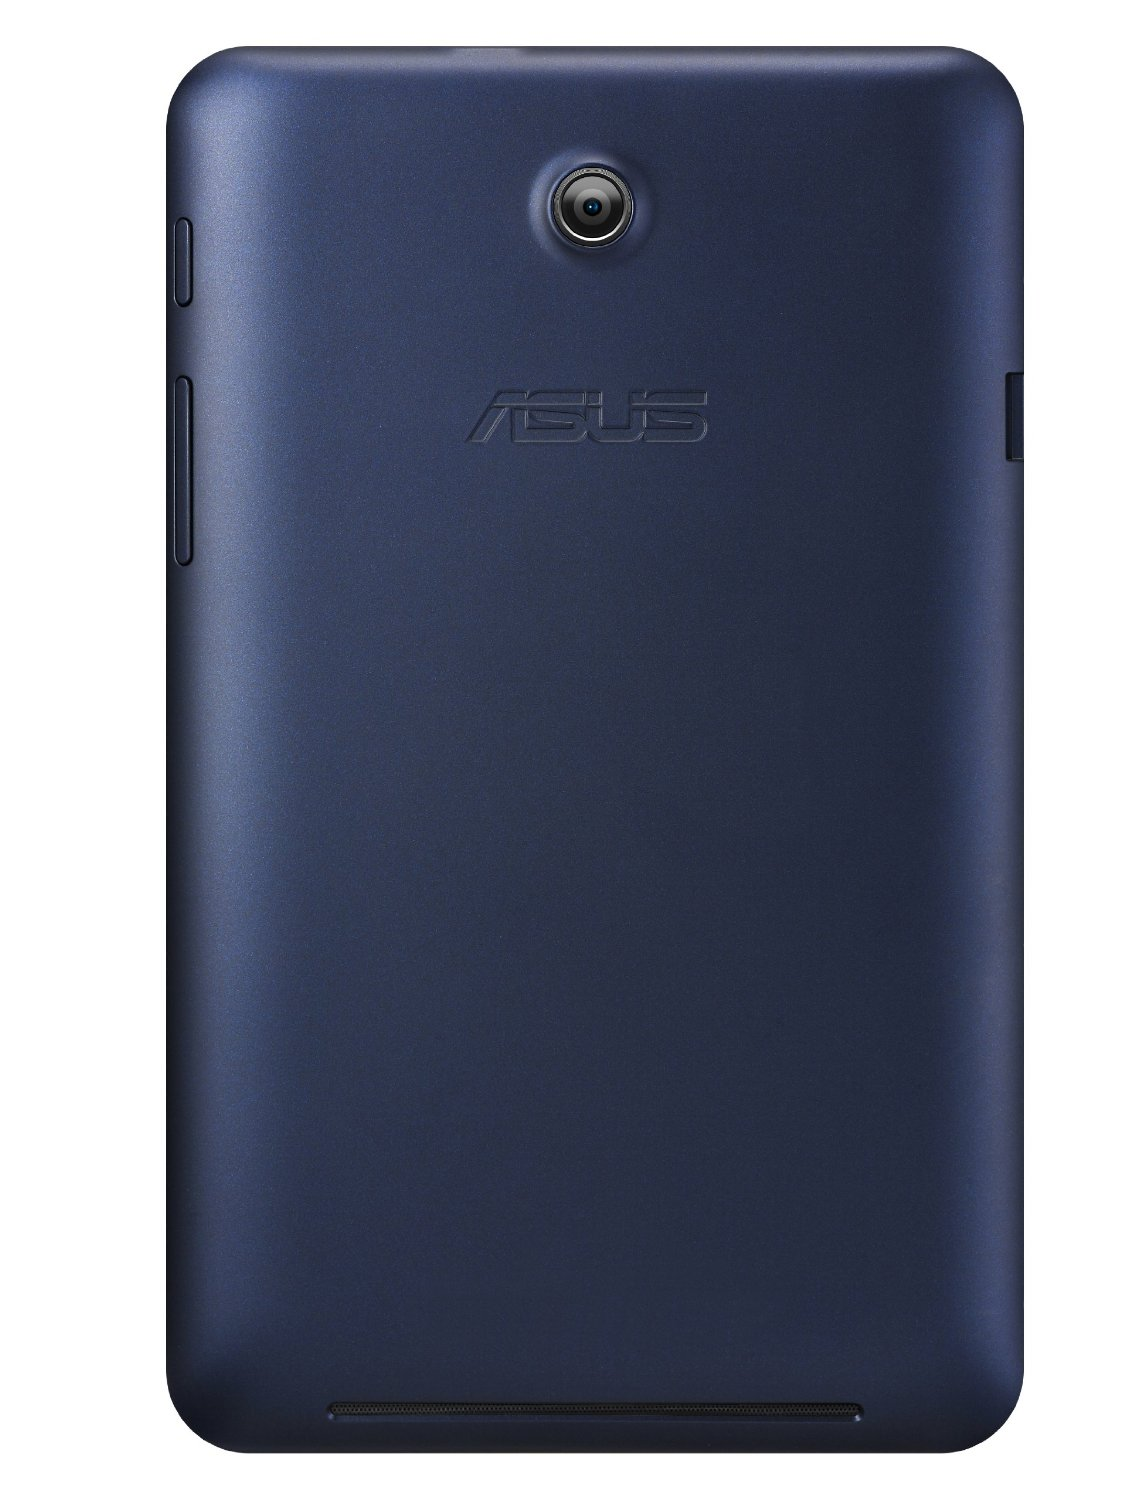 ASUS MeMO Pad HD 7 - The Best 7-Inch Budget Tablet